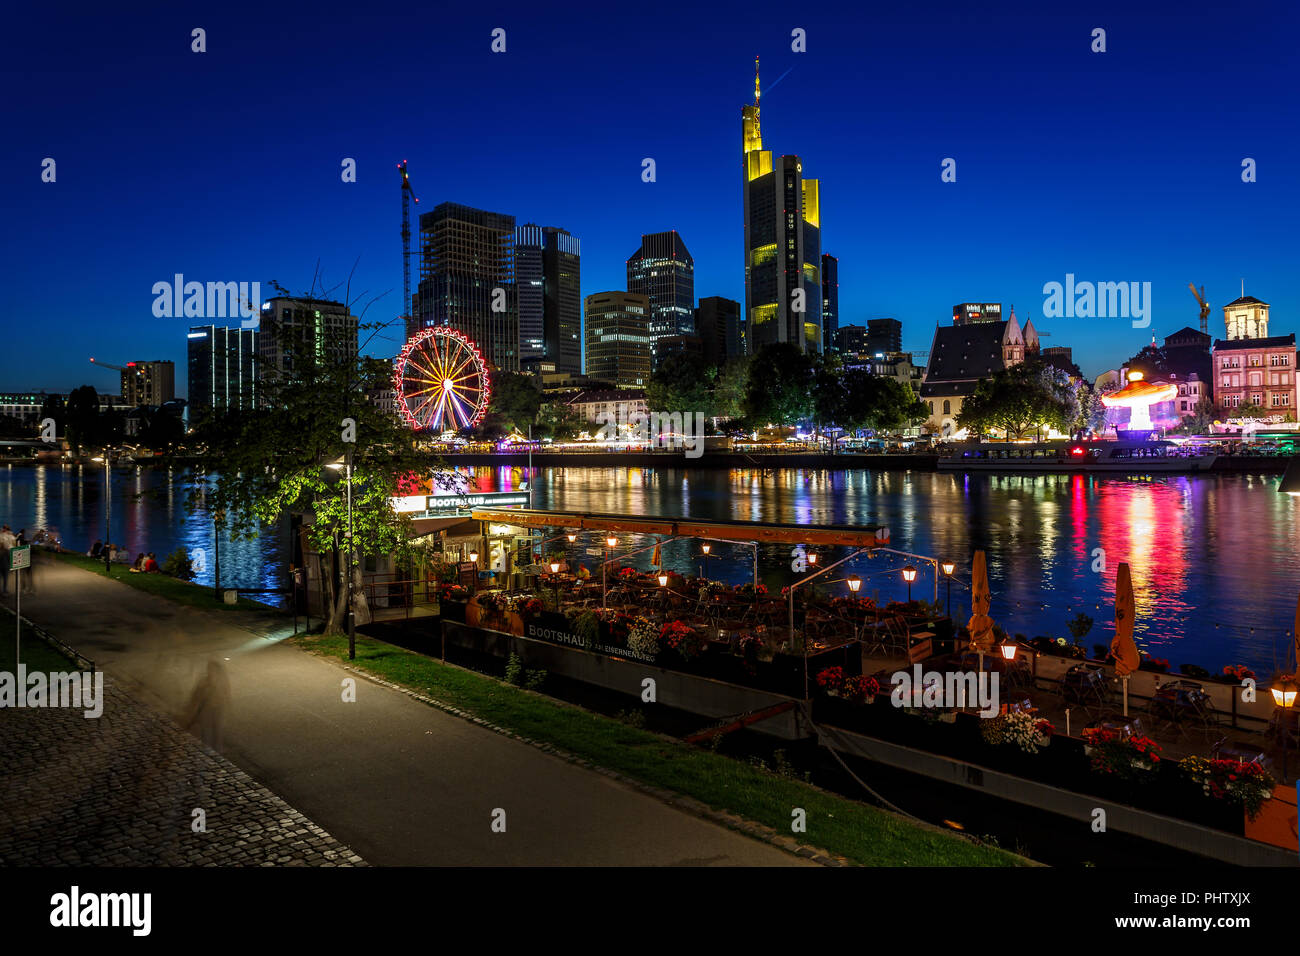 Illumination photos illumination images alamy for Central grill frankfurt